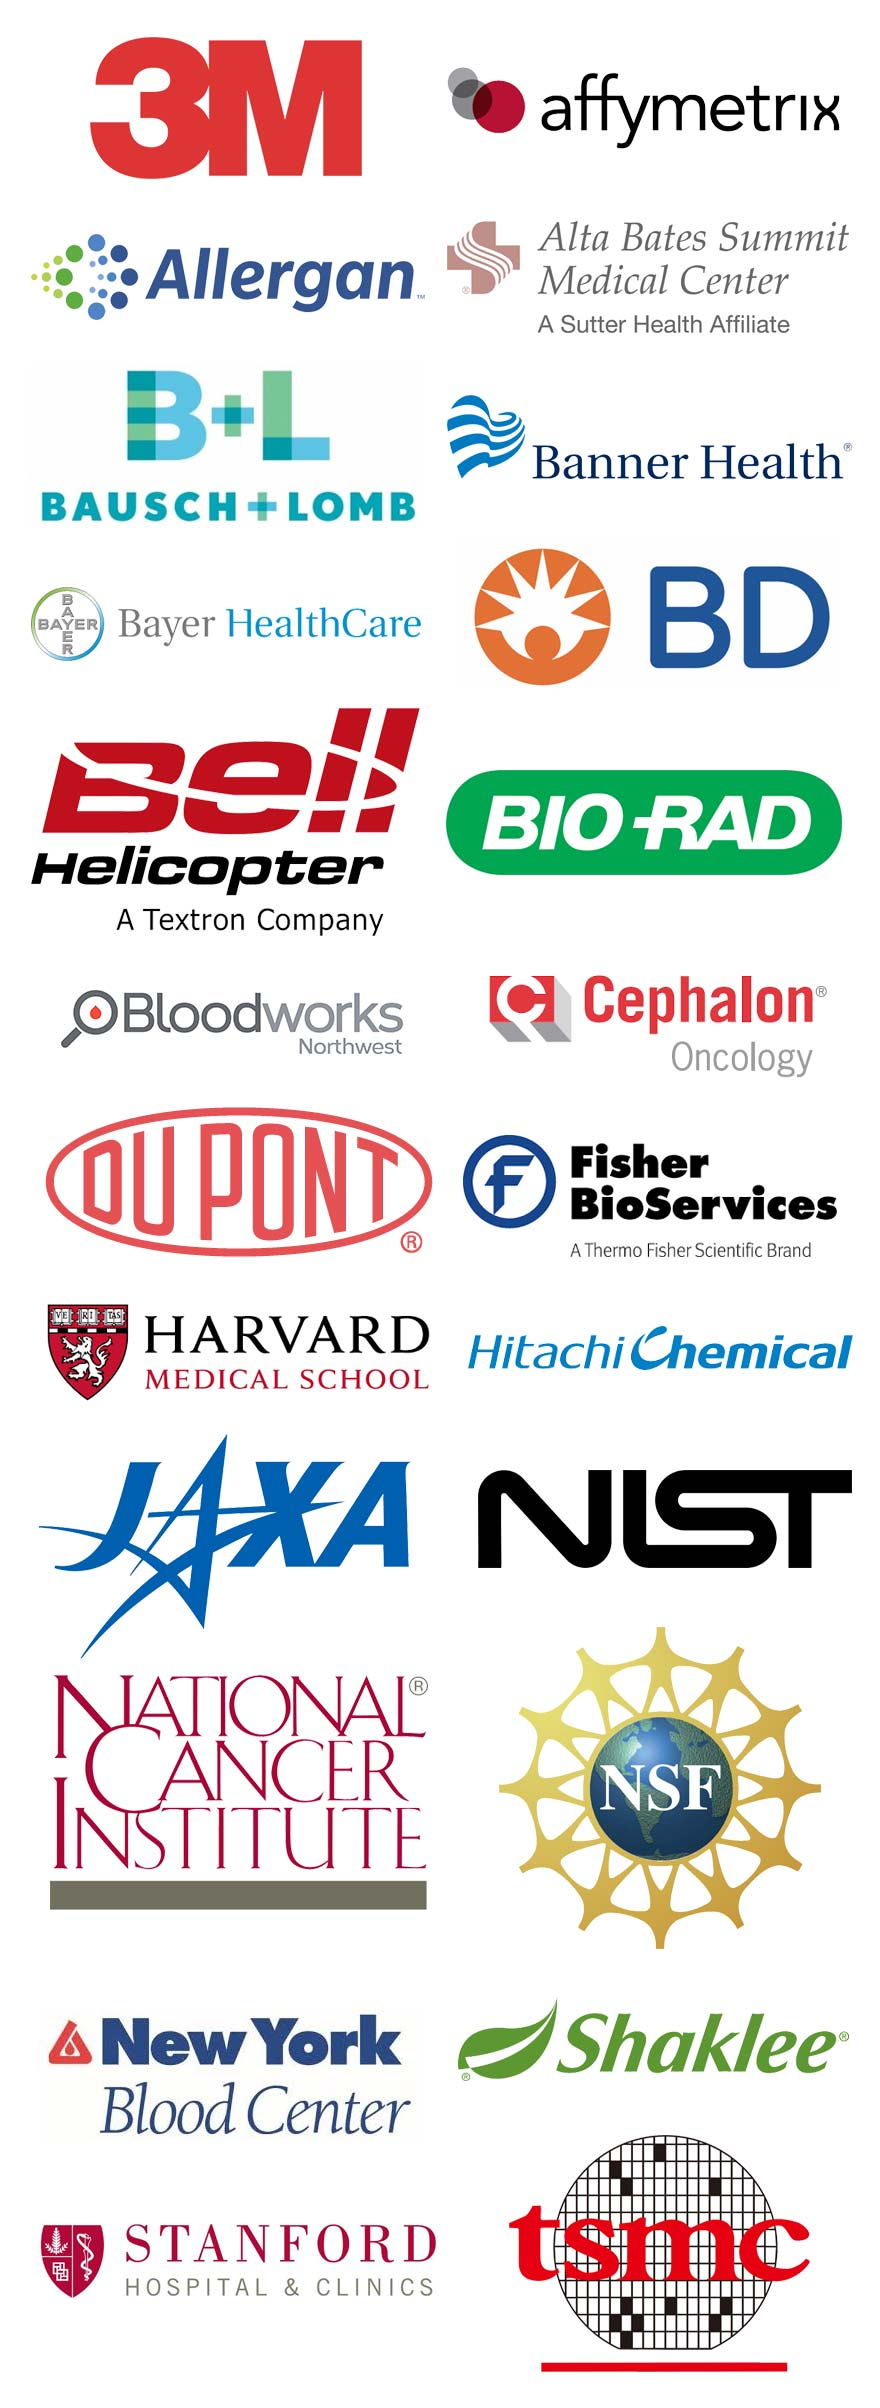 A few of our satisfied customers: 3M, AFFYMETRIX, Allergan, Alta Bates Summit Medical Center, Bausch & Lomb, Banner Health, Bayer HealthCare, BD, Bell Helicopter, Bio-Rad, Bloodworks, Cephalon, Fisher BioServices, Harvard Medical School, Hitachi Chemical, JAXA, National Cancer Institute, National Institute of Standards and Technology (NIST), National Institute of Health, New York Blood Center, Shaklee, Stanford Hospital & Clinics, TSMC.